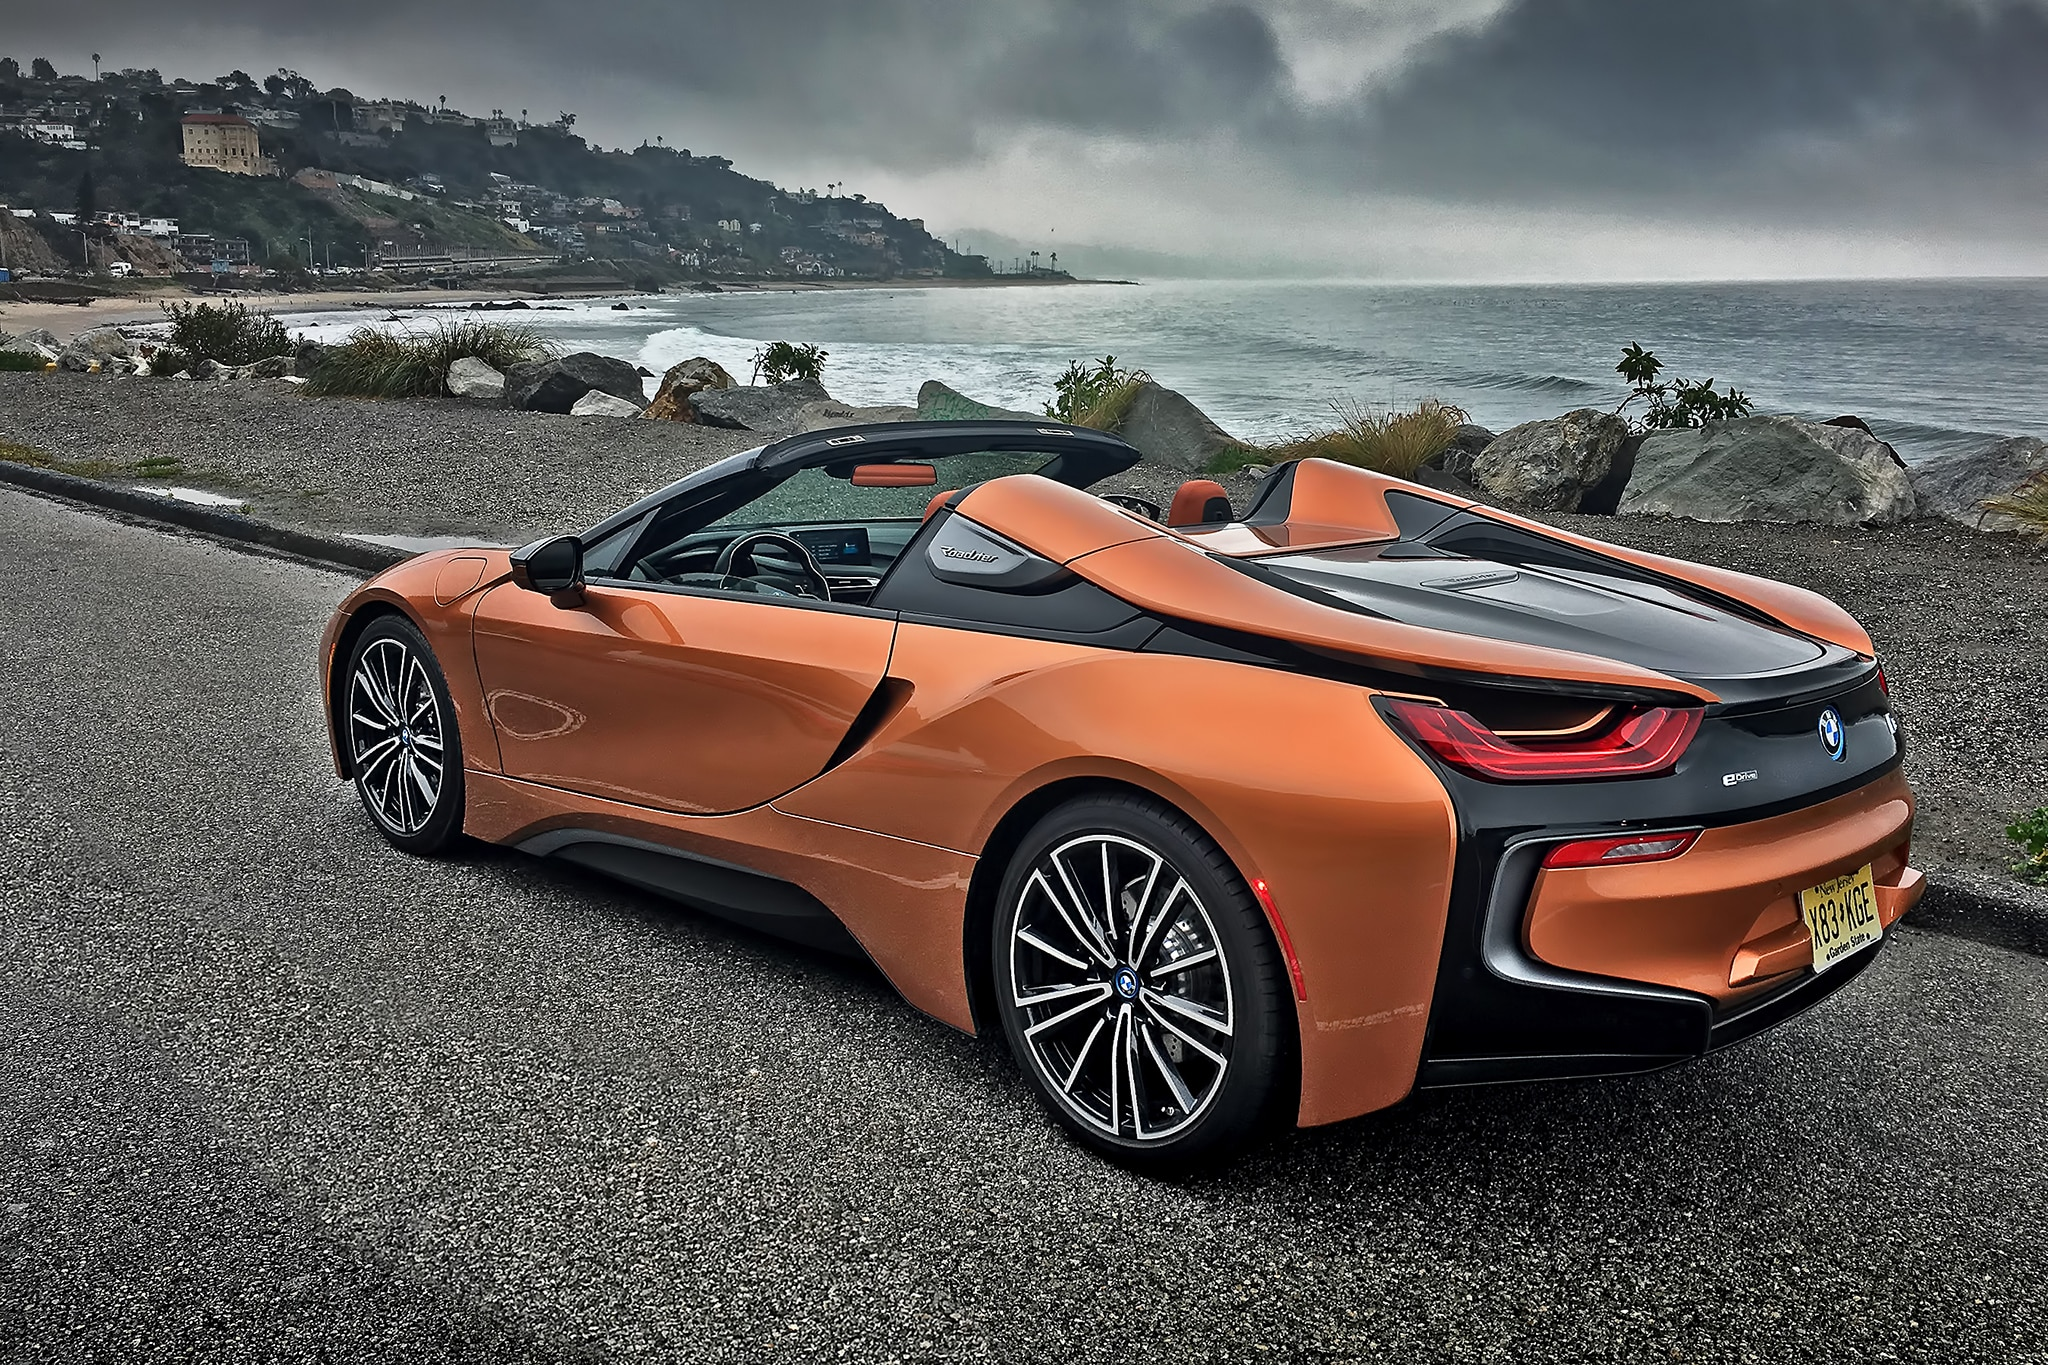 2019 bmw i8 roadster review  impressively distinctive